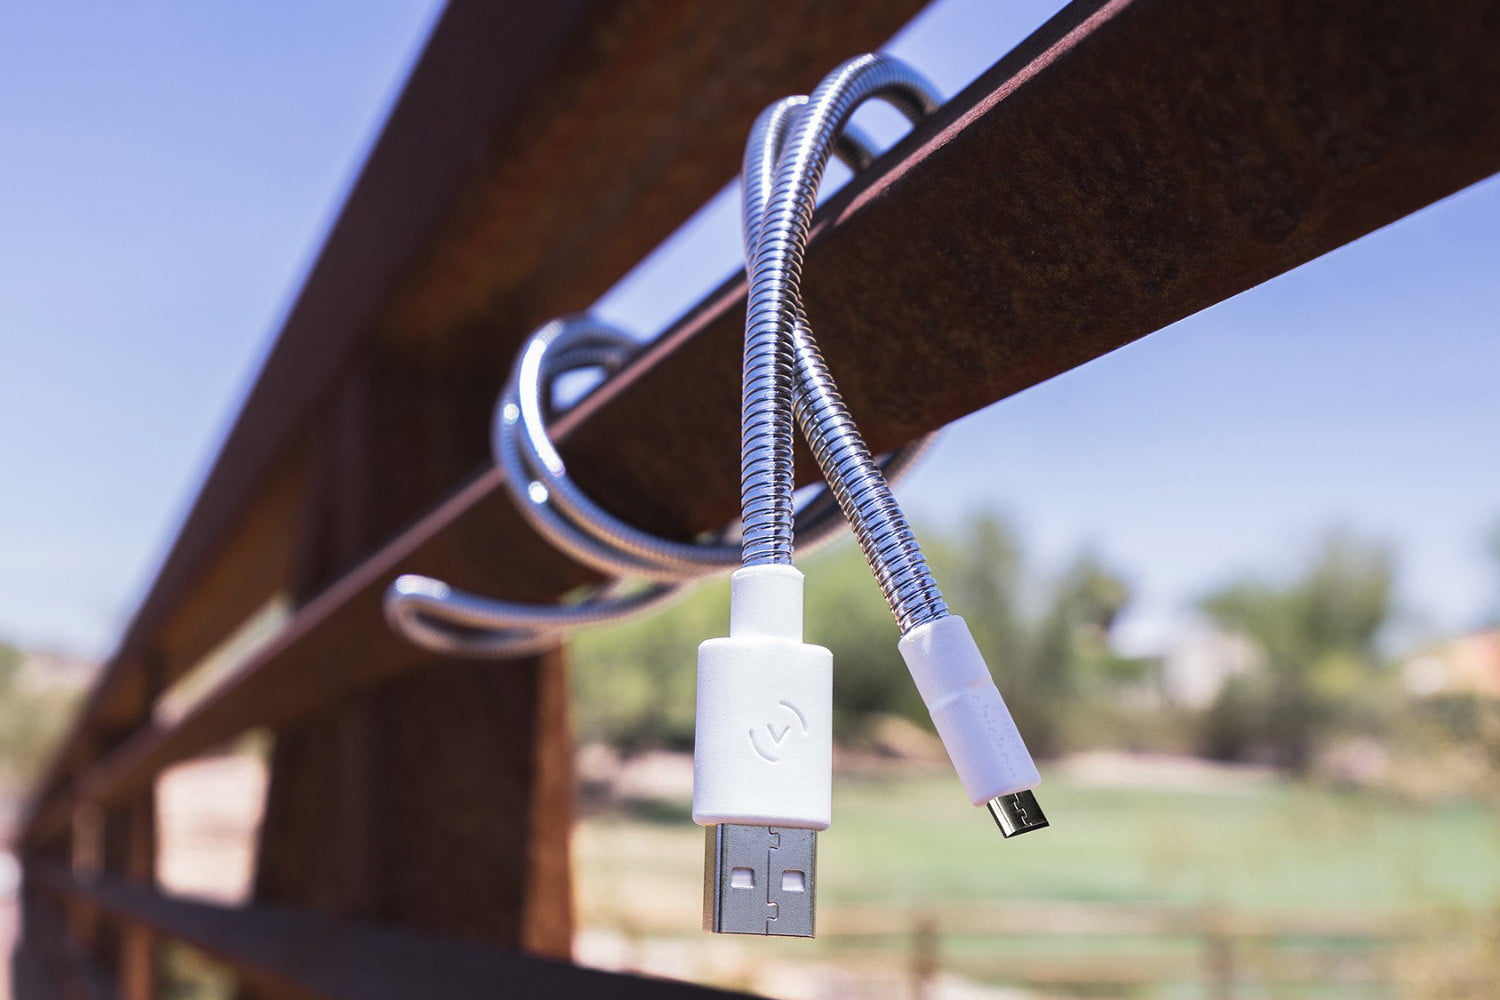 The Best Micro USB Cables for Charging Your Gadgets